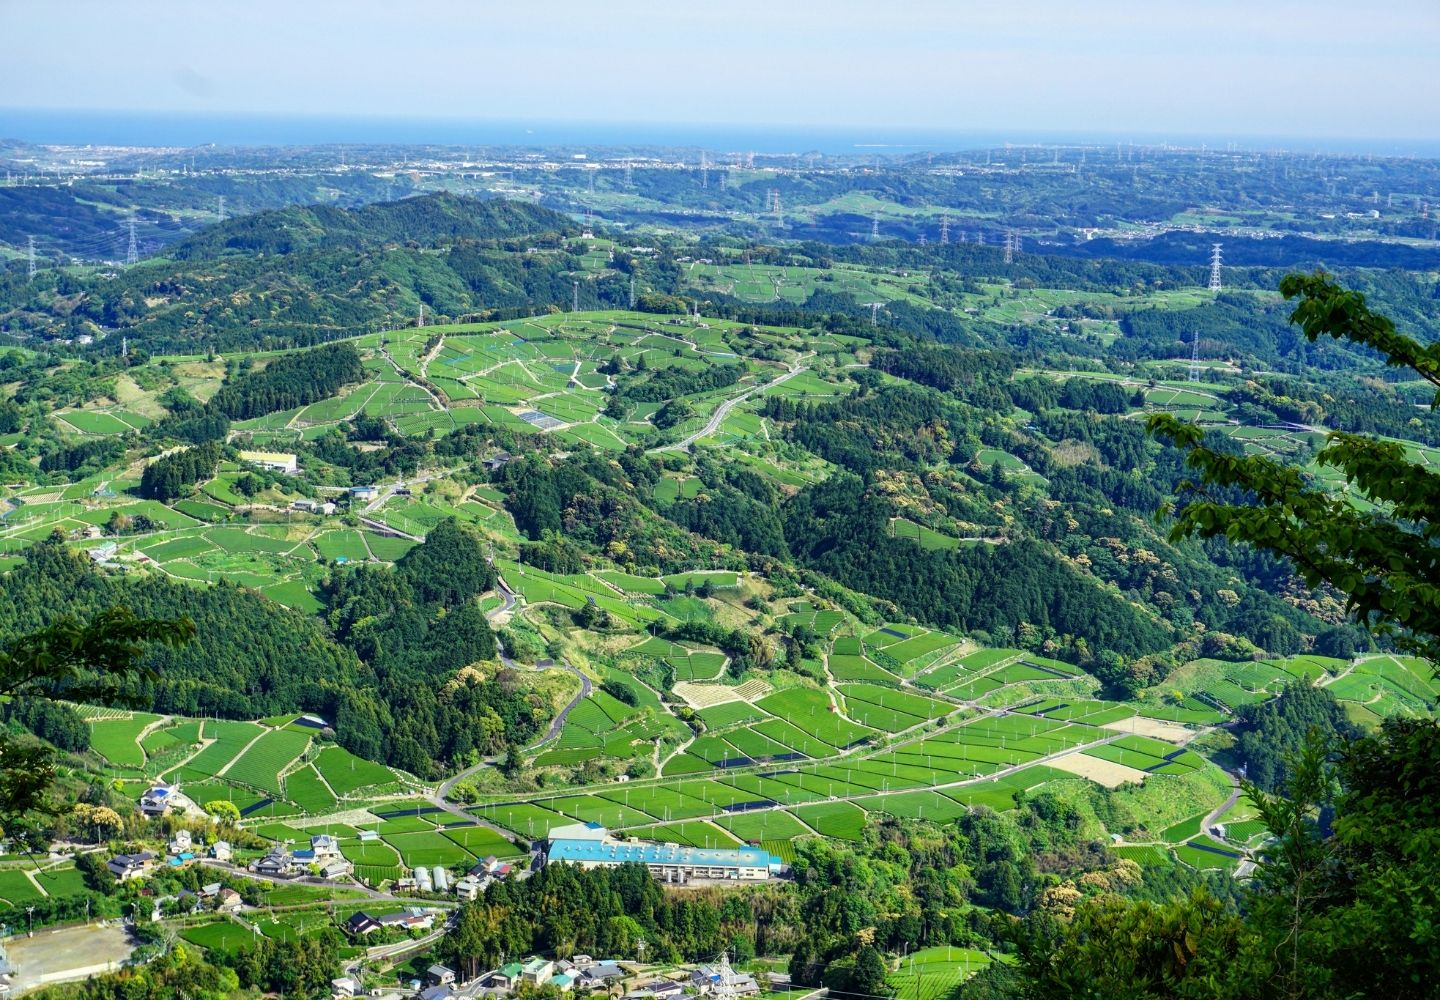 A photo looking down at the tea fields of Shizuoka in Japan. This is the region in which our GABA Sencha green tea is grown.